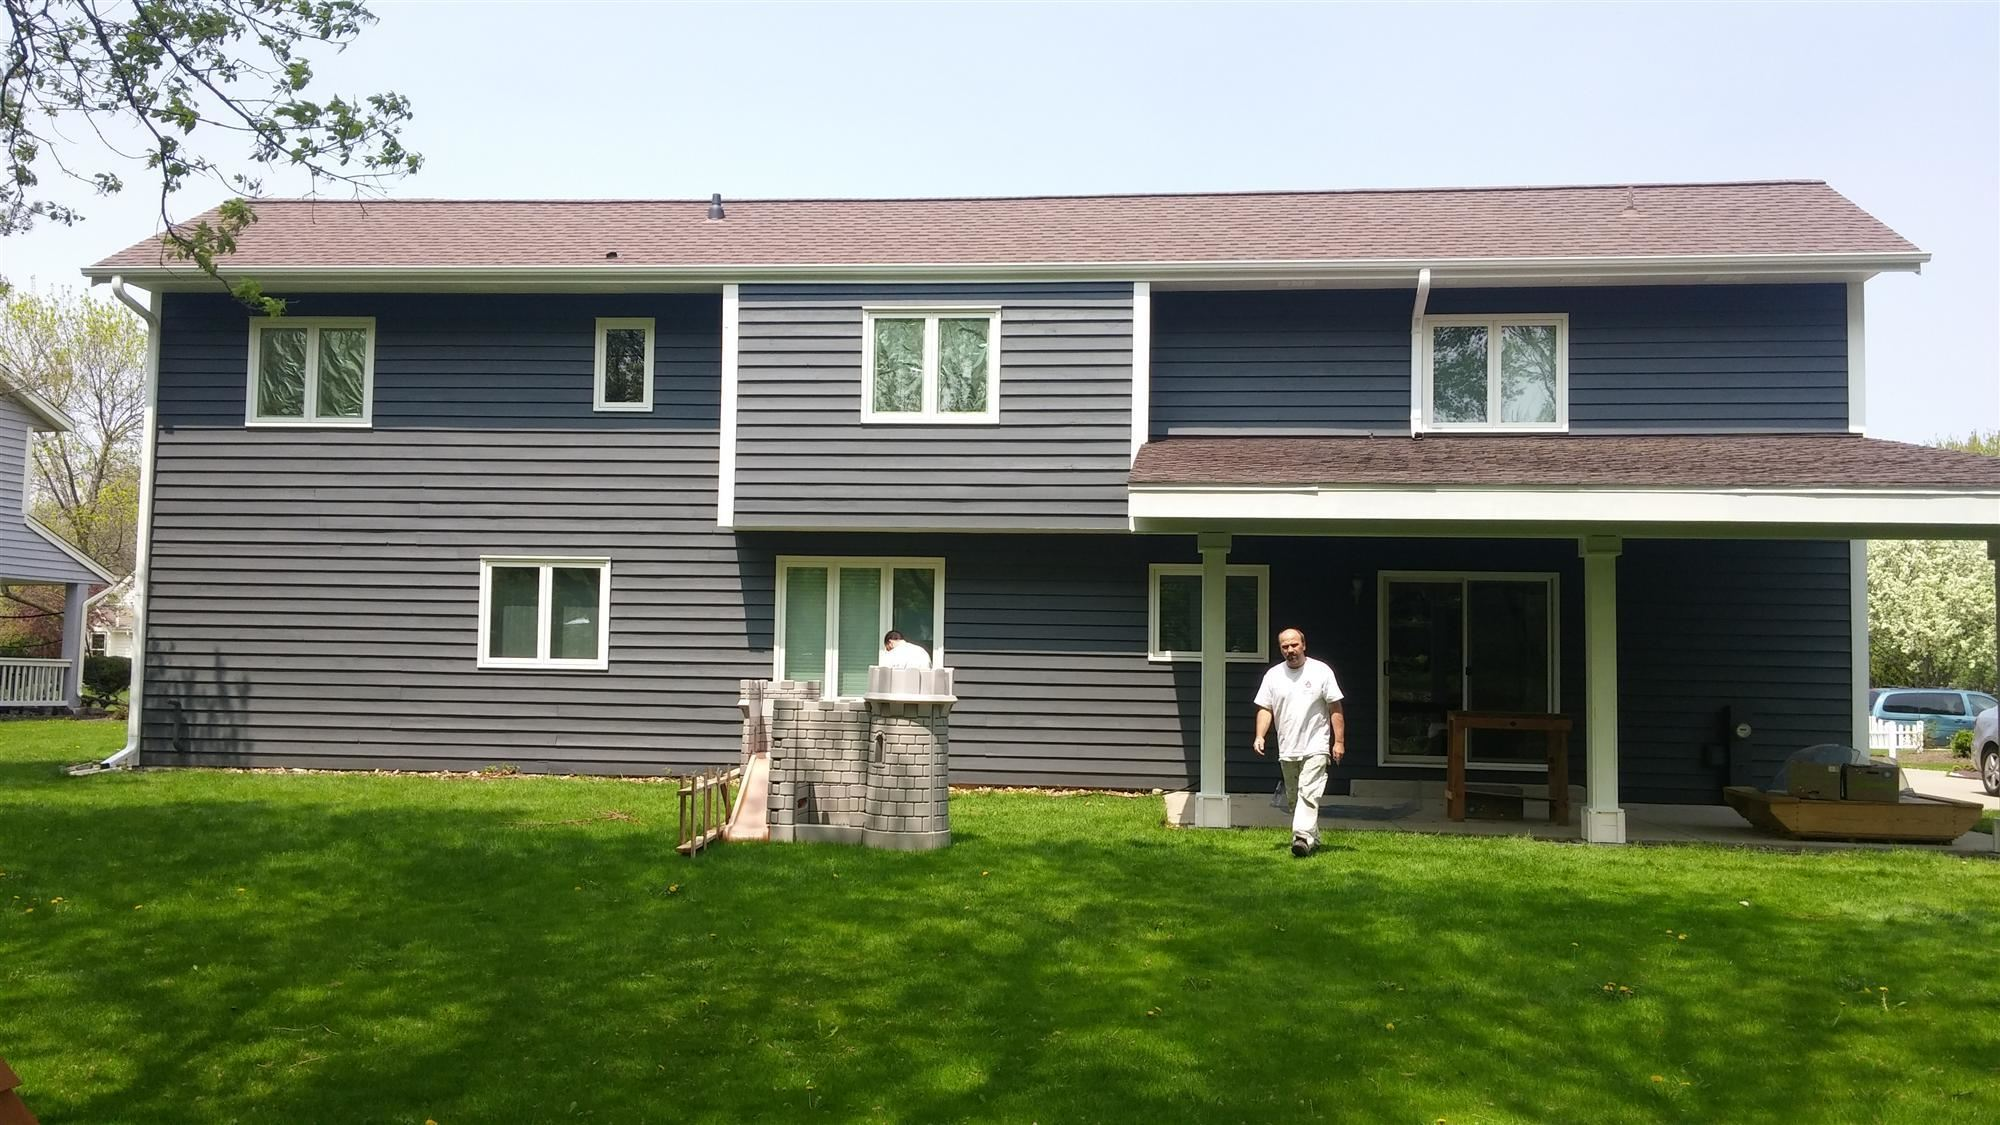 Waukesha Painters & Painting contractors for residential spaces - Interior & Exterior Painting Services | Pressure Washing